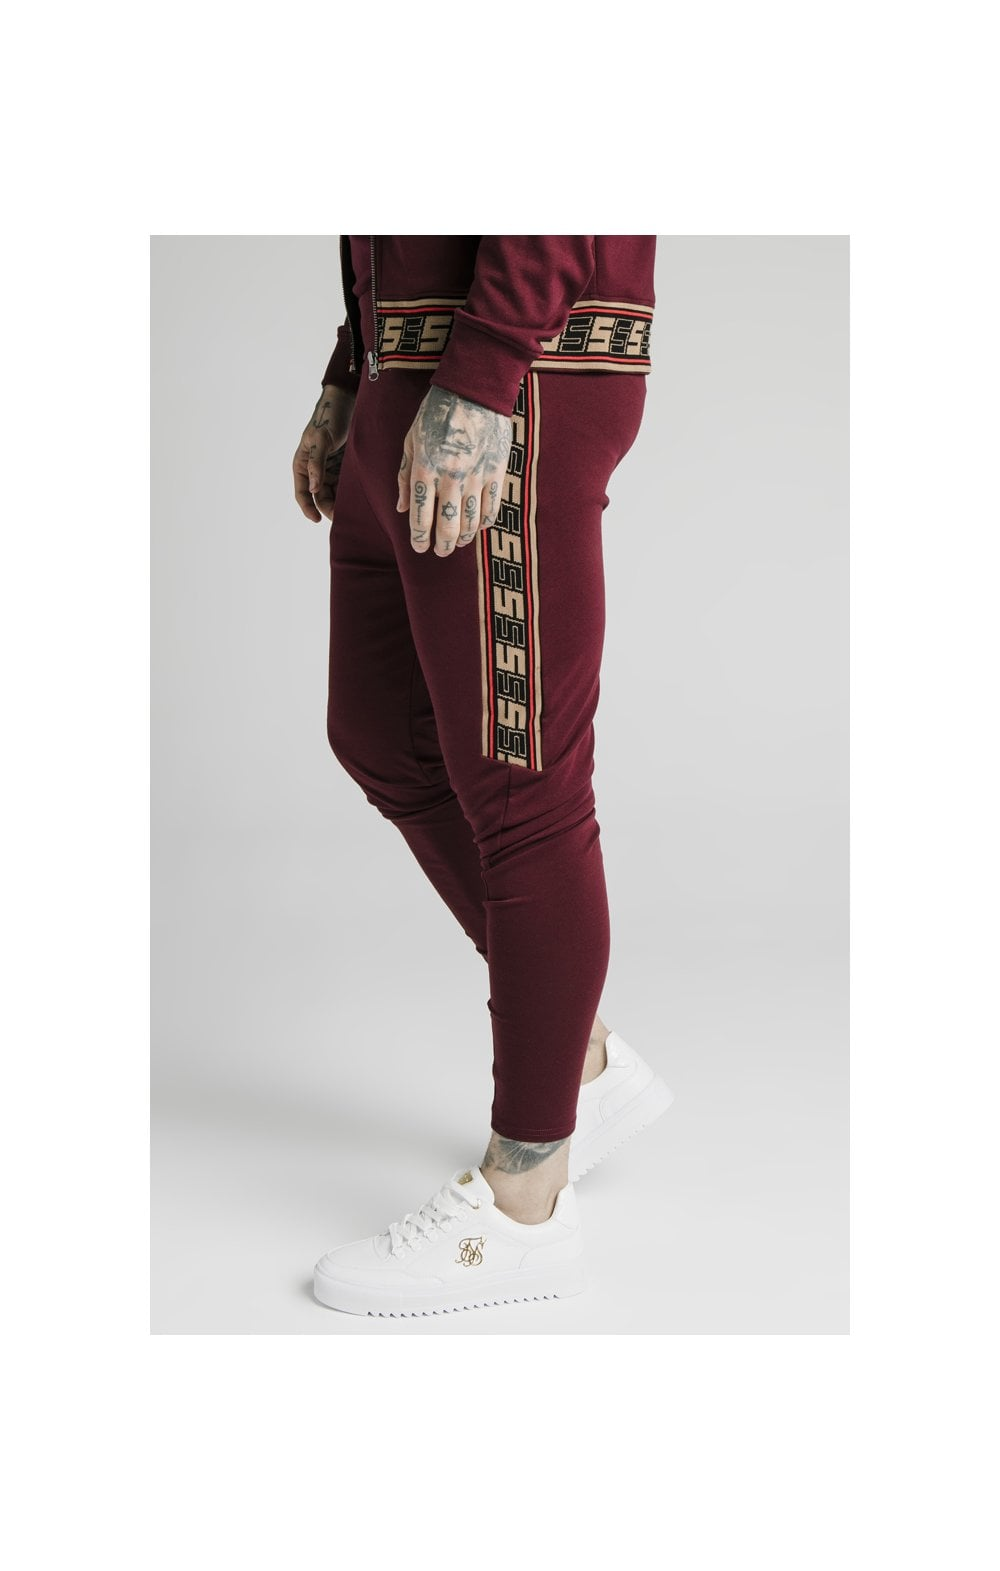 SikSilk Retro Jacquard Athlete Pants - Burgundy (2)